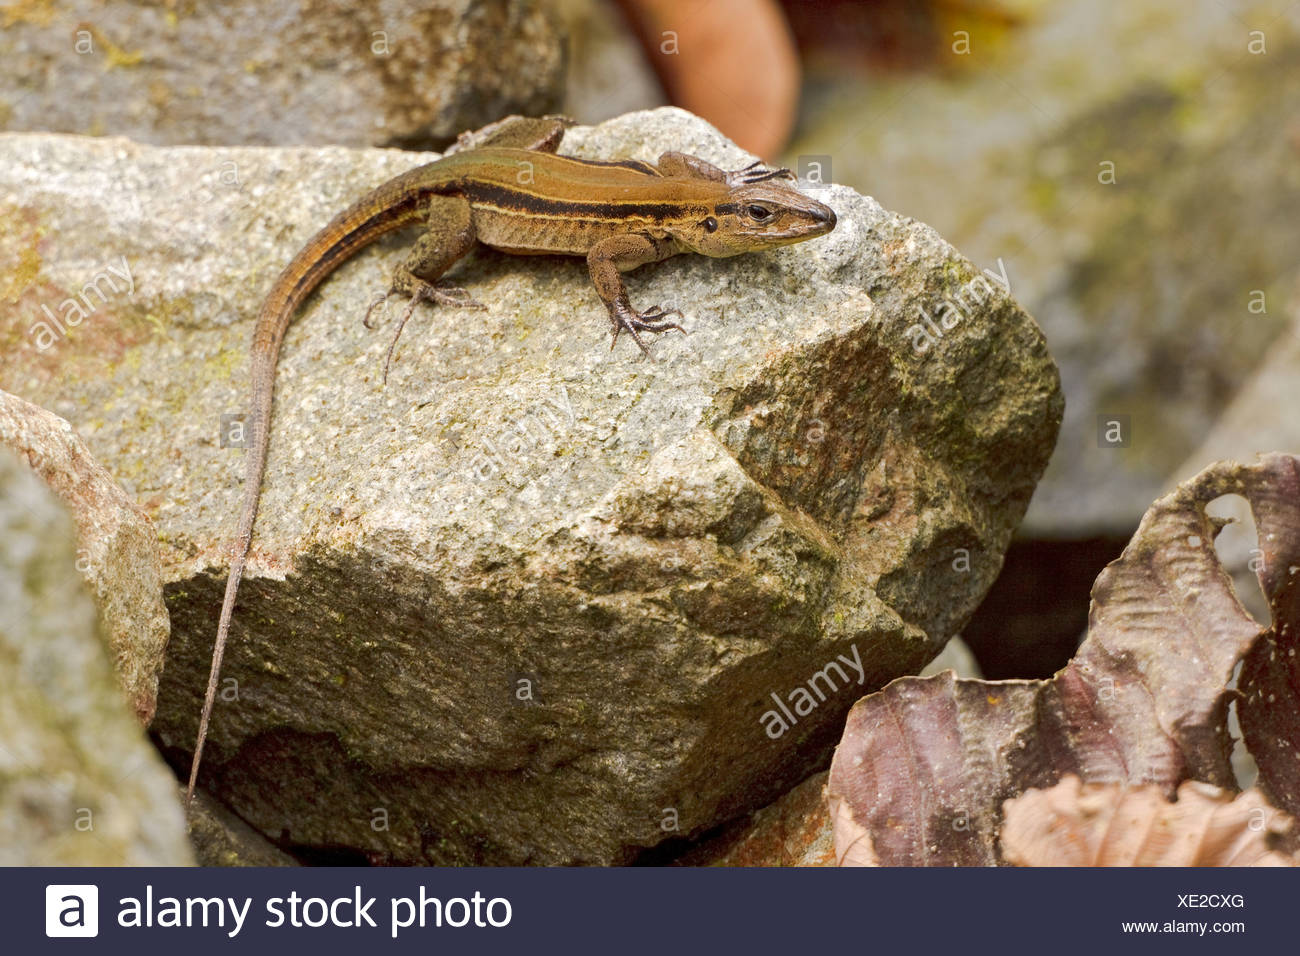 A lizard perched on a rock in the Milpe reserve in northwest Ecuador. - Stock Image